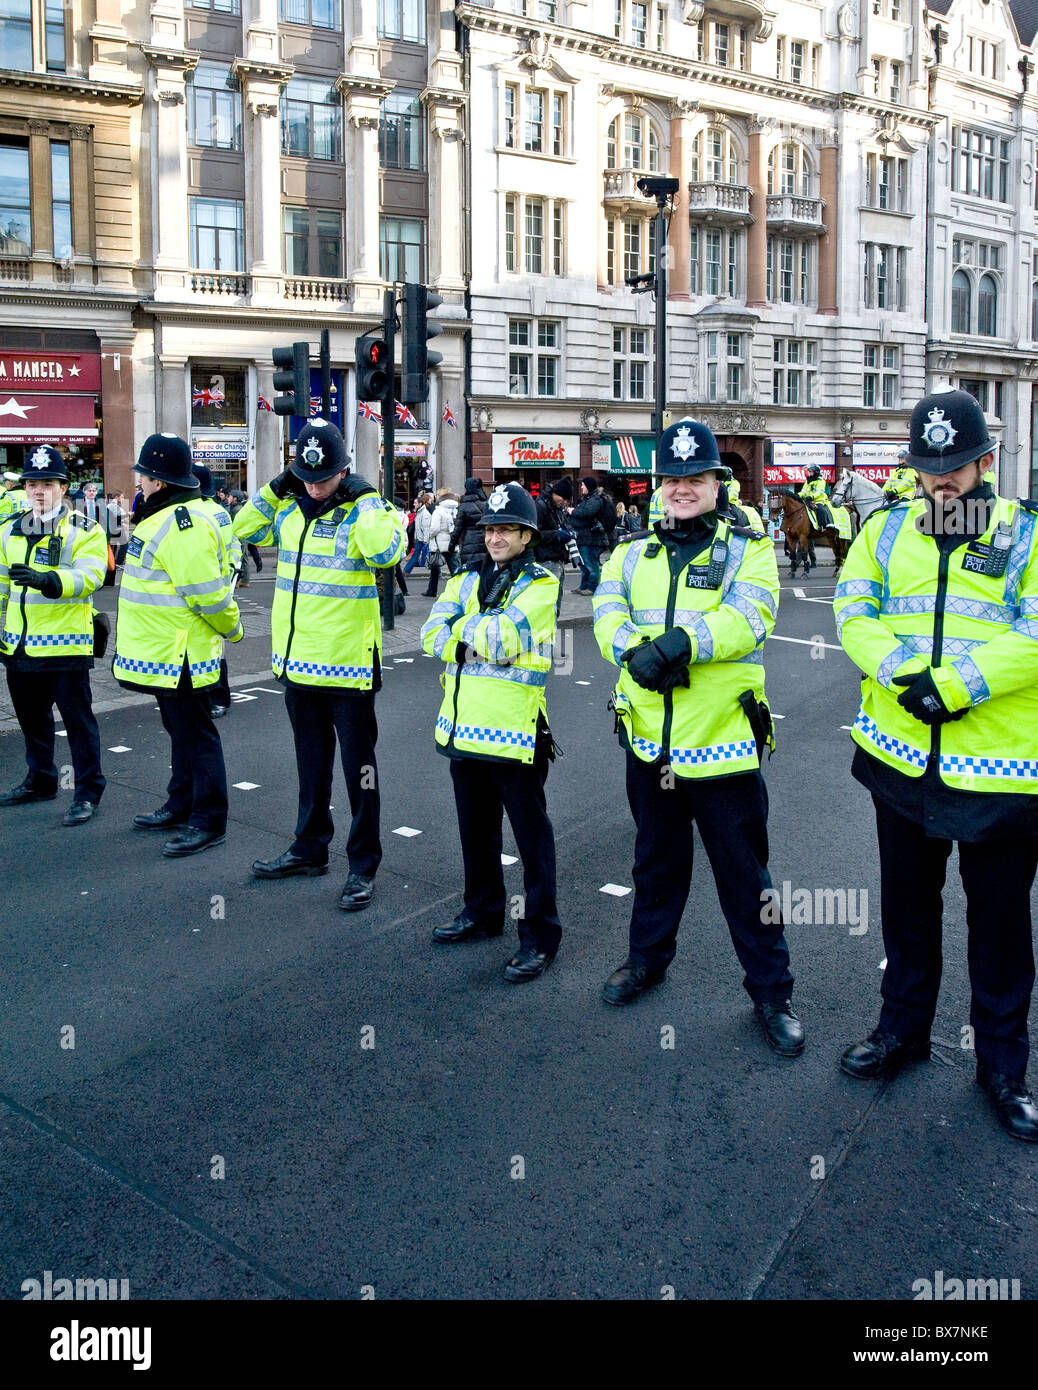 A line of Metropolitan Police Officers at a demonstration in London. - Stock Image